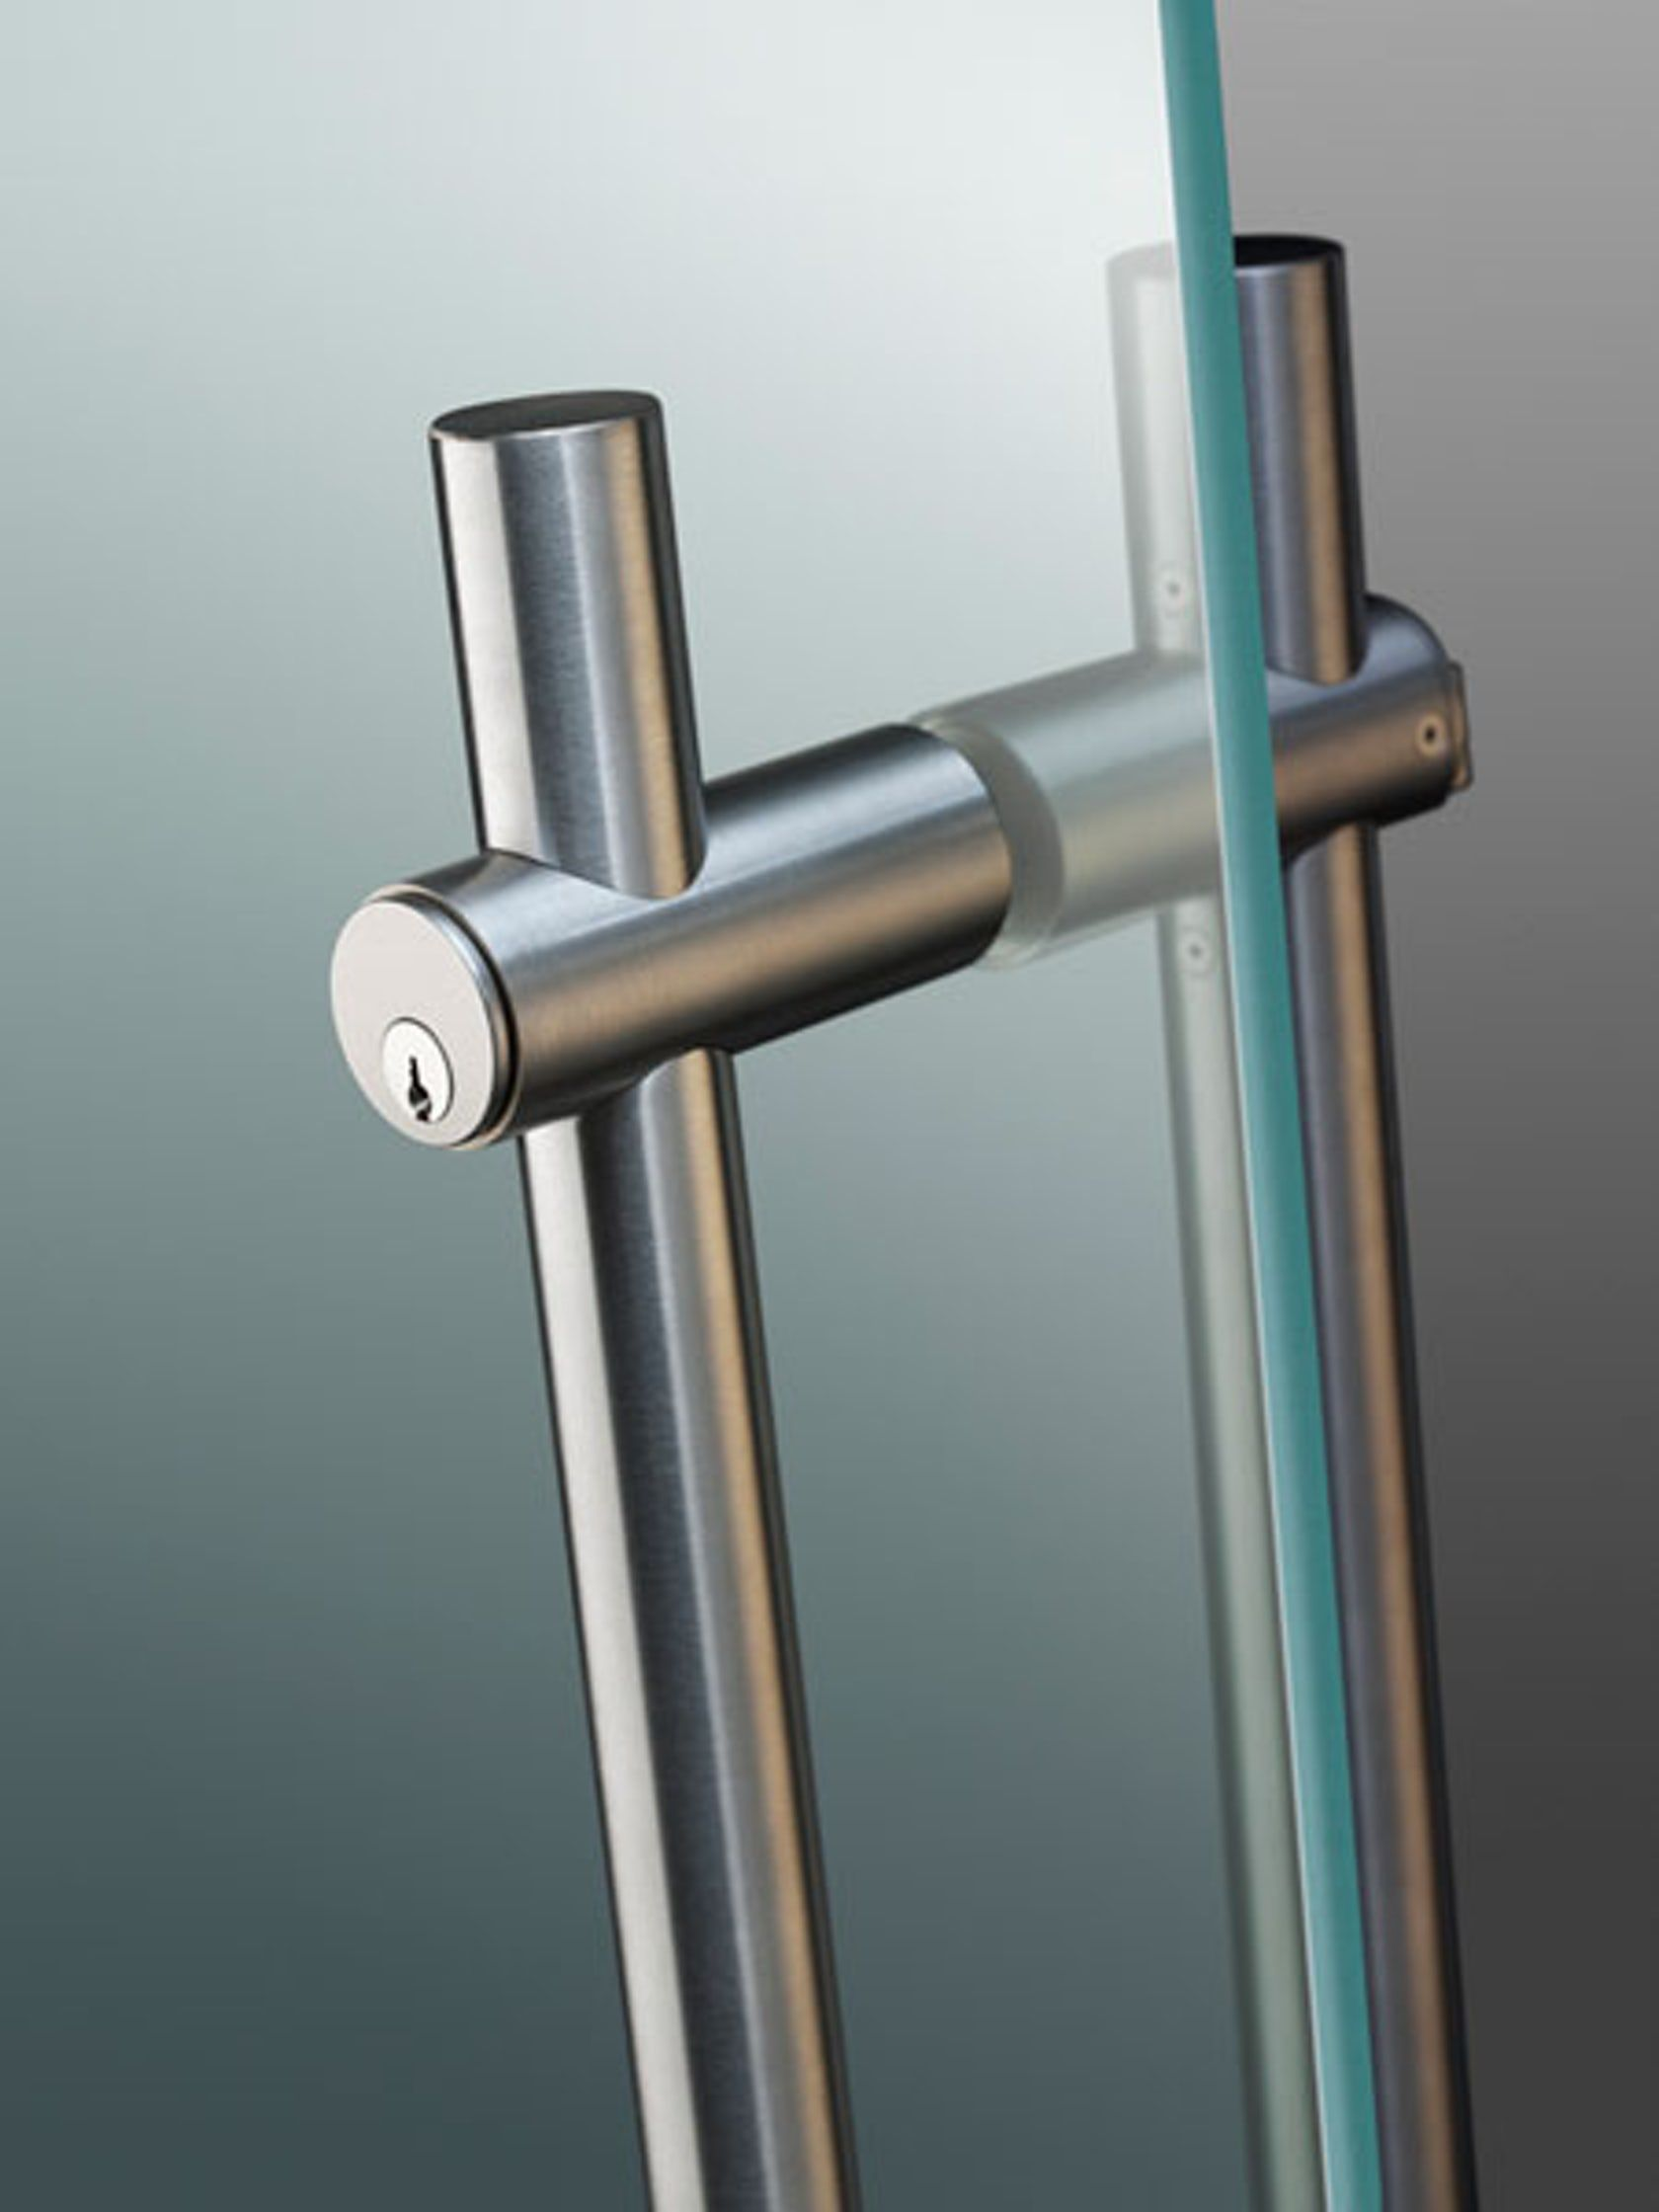 Rockwood By Assa Abloy Architizer Rockwood Doors Cleaning Glass